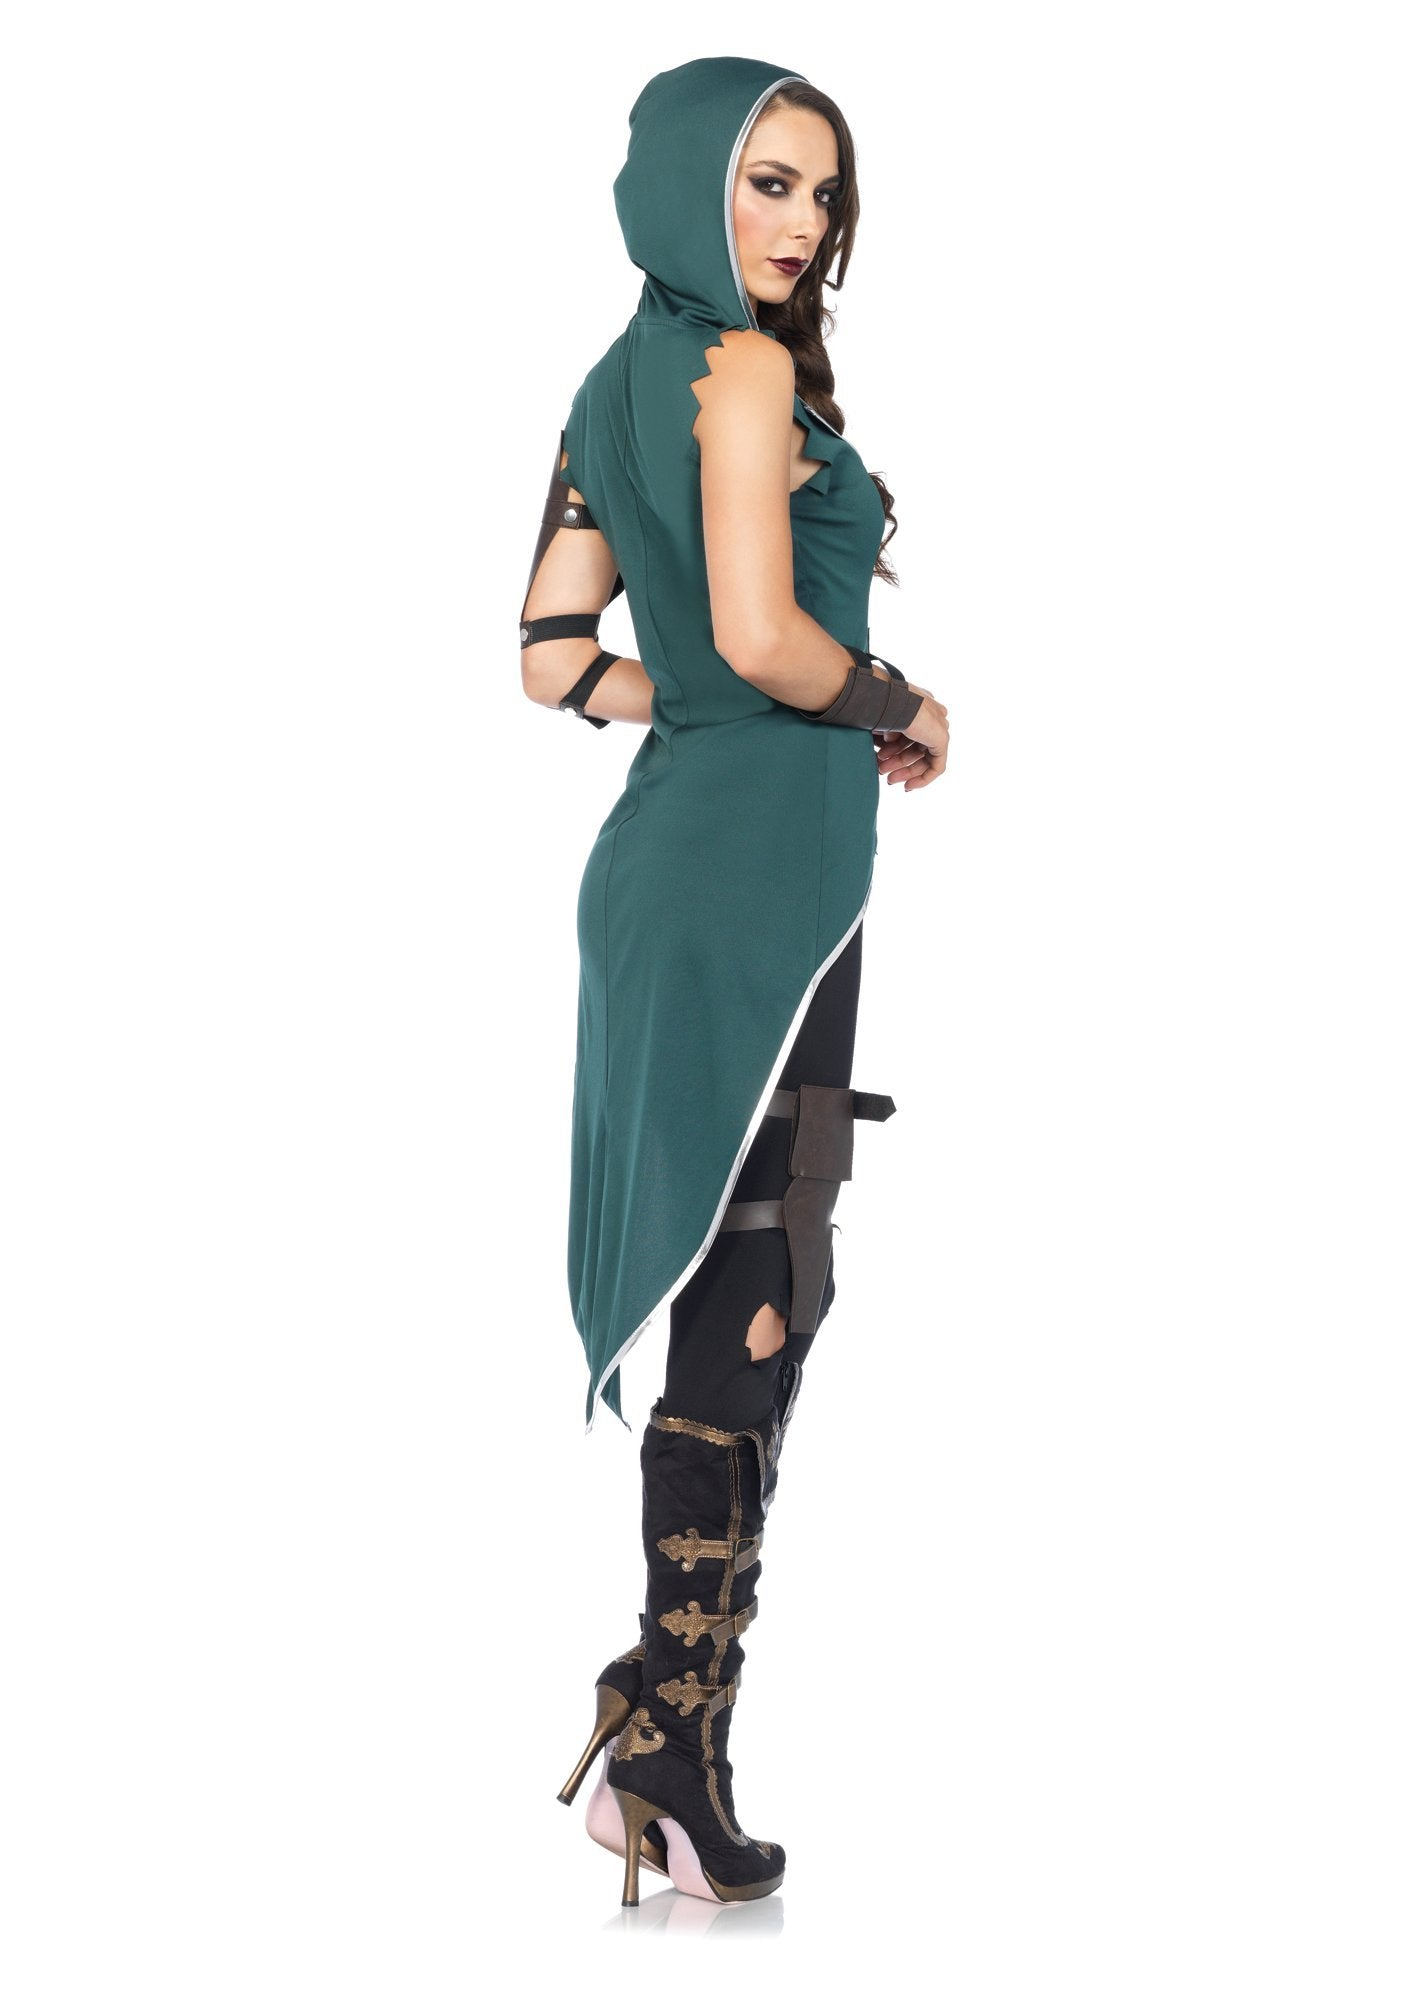 Leg Avenue Costumes Adult Rebel Robin Hood Costume